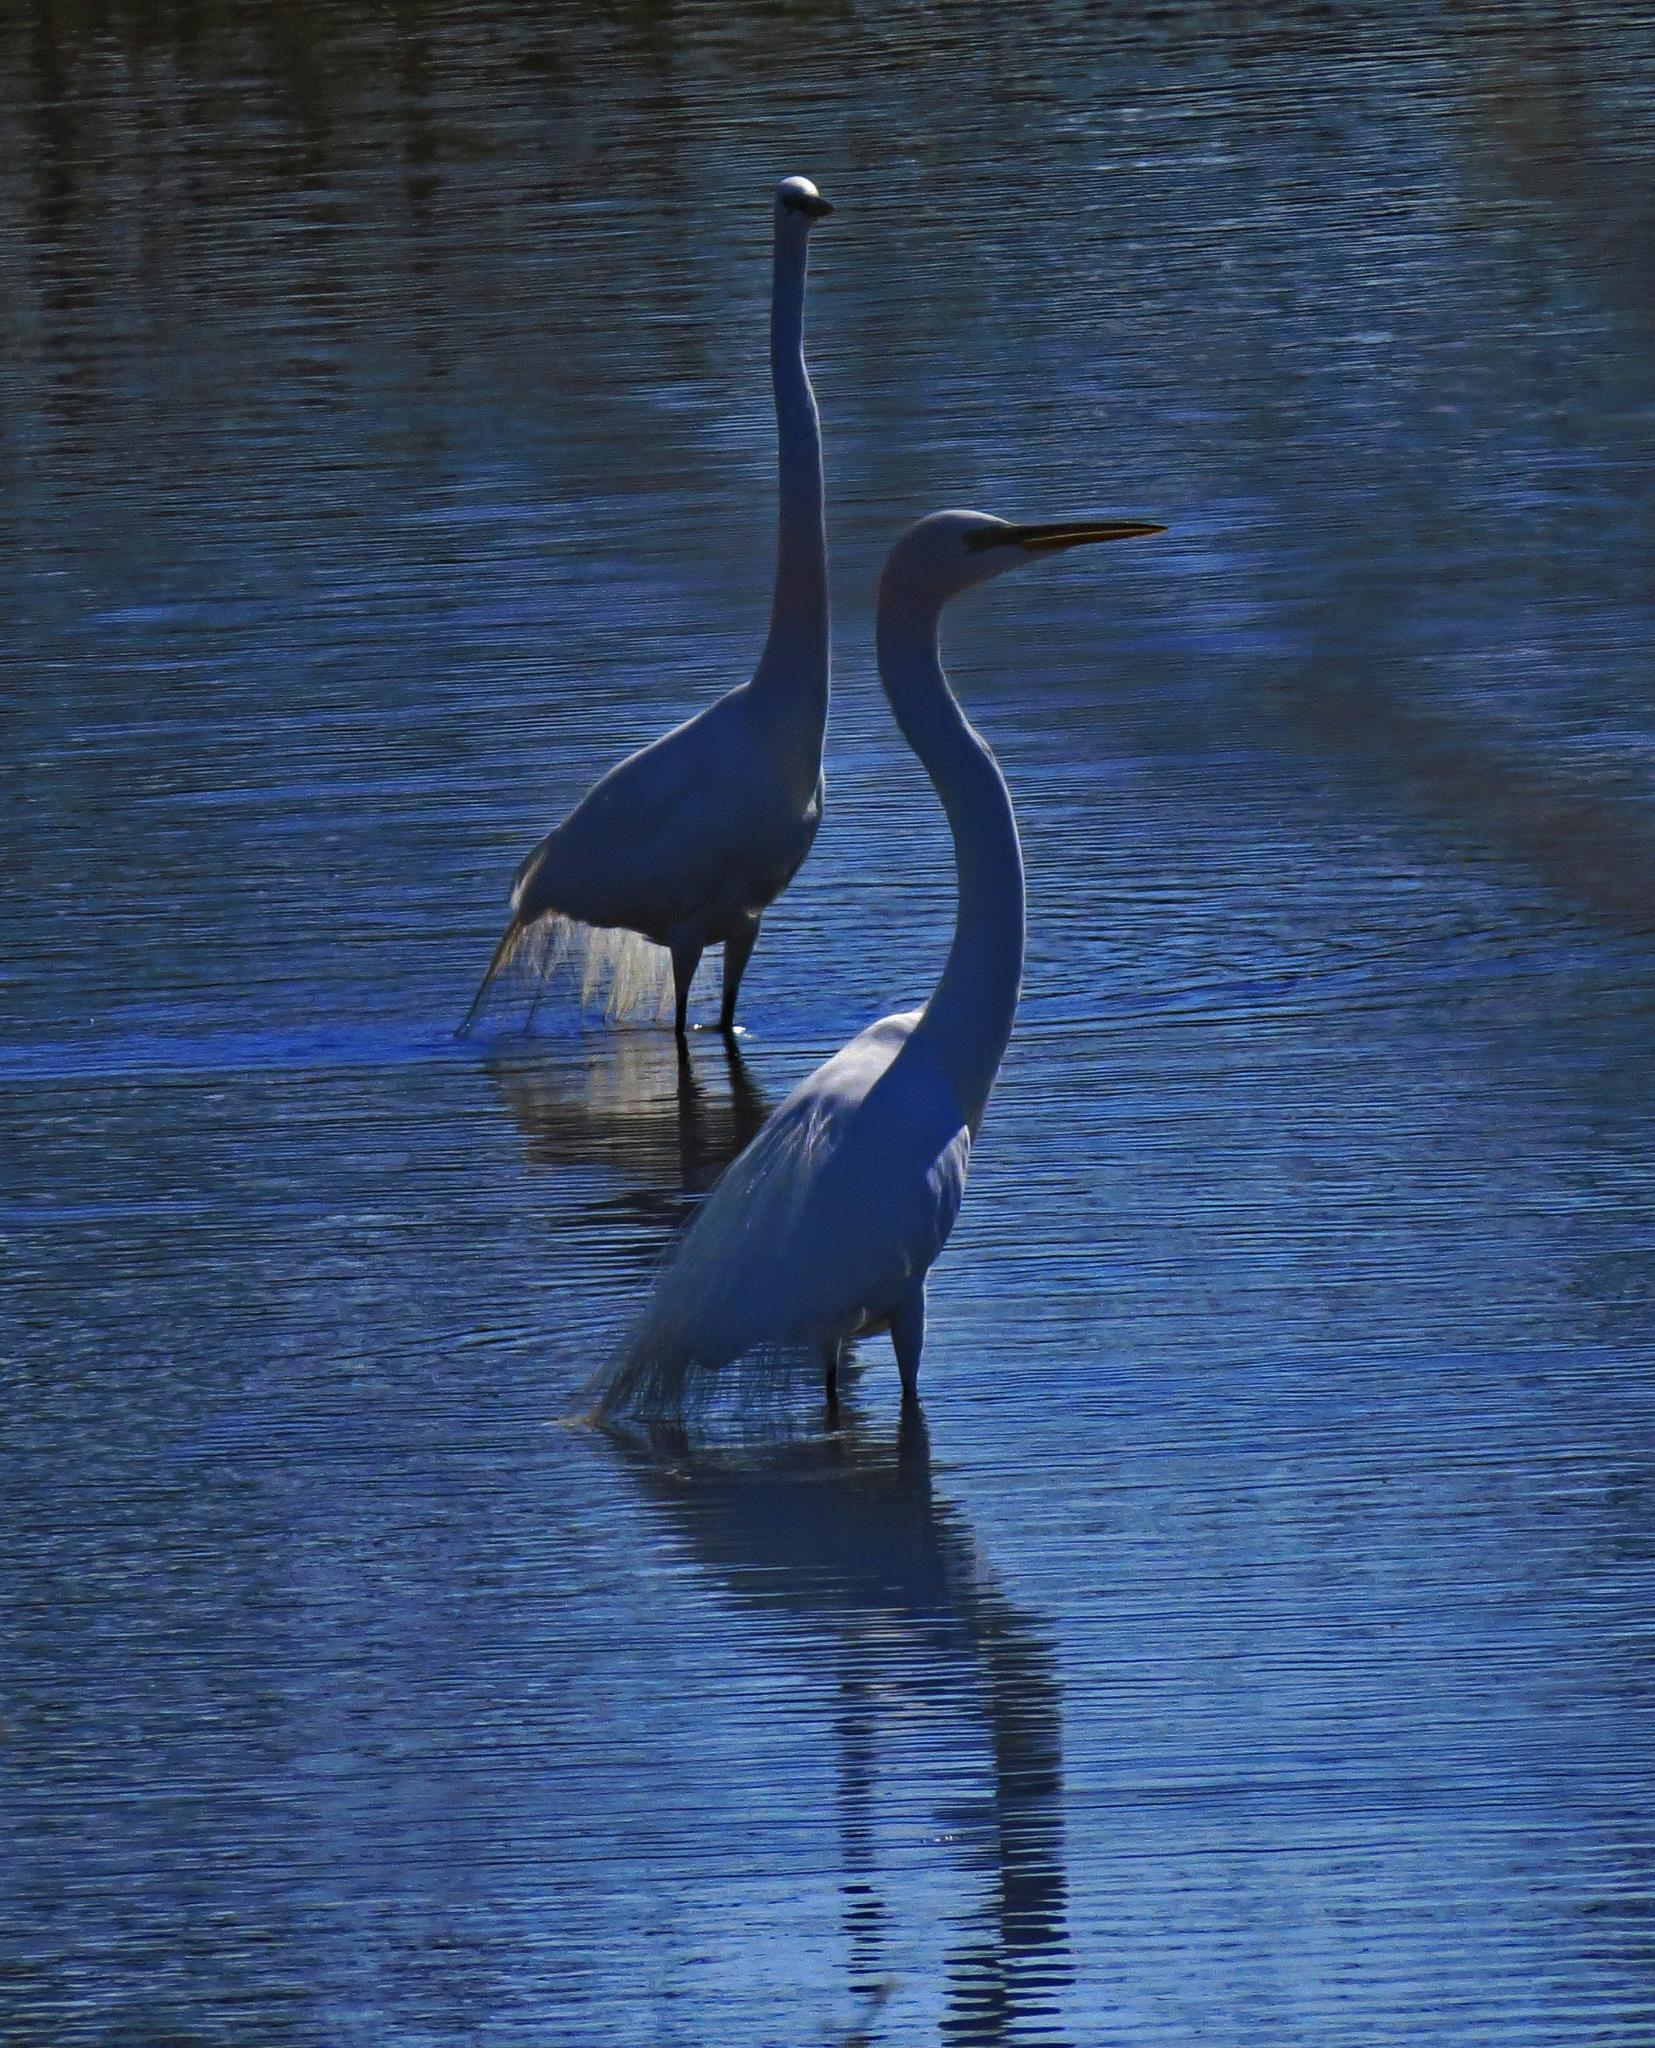 Great Egrets by Wayne T. 'tom' Helfrich